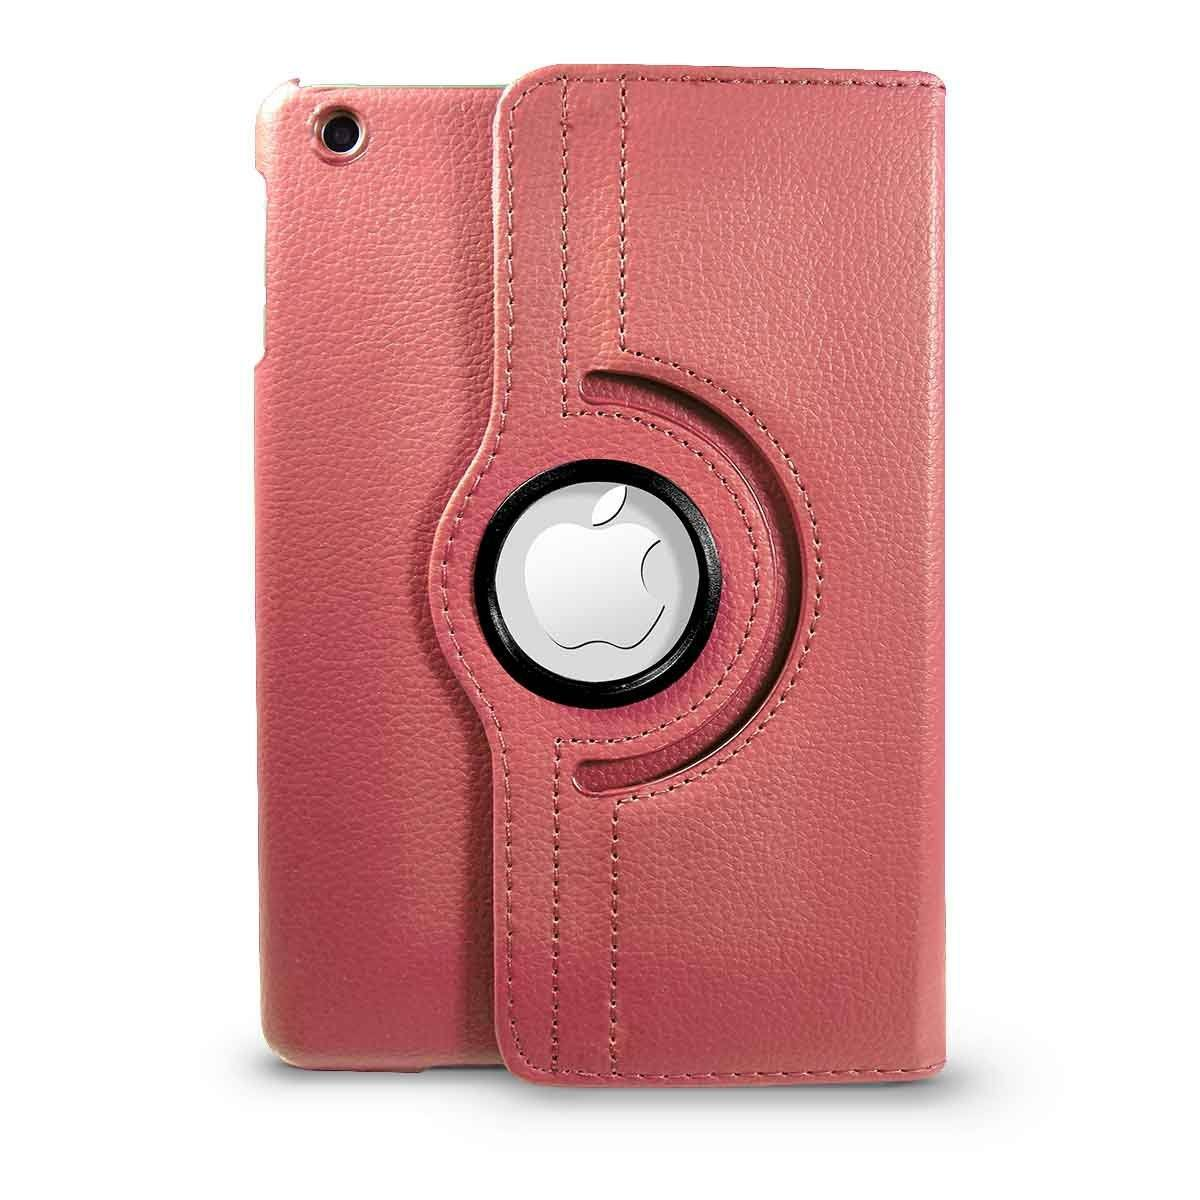 Rotate Case for IP234 - Rose Gold